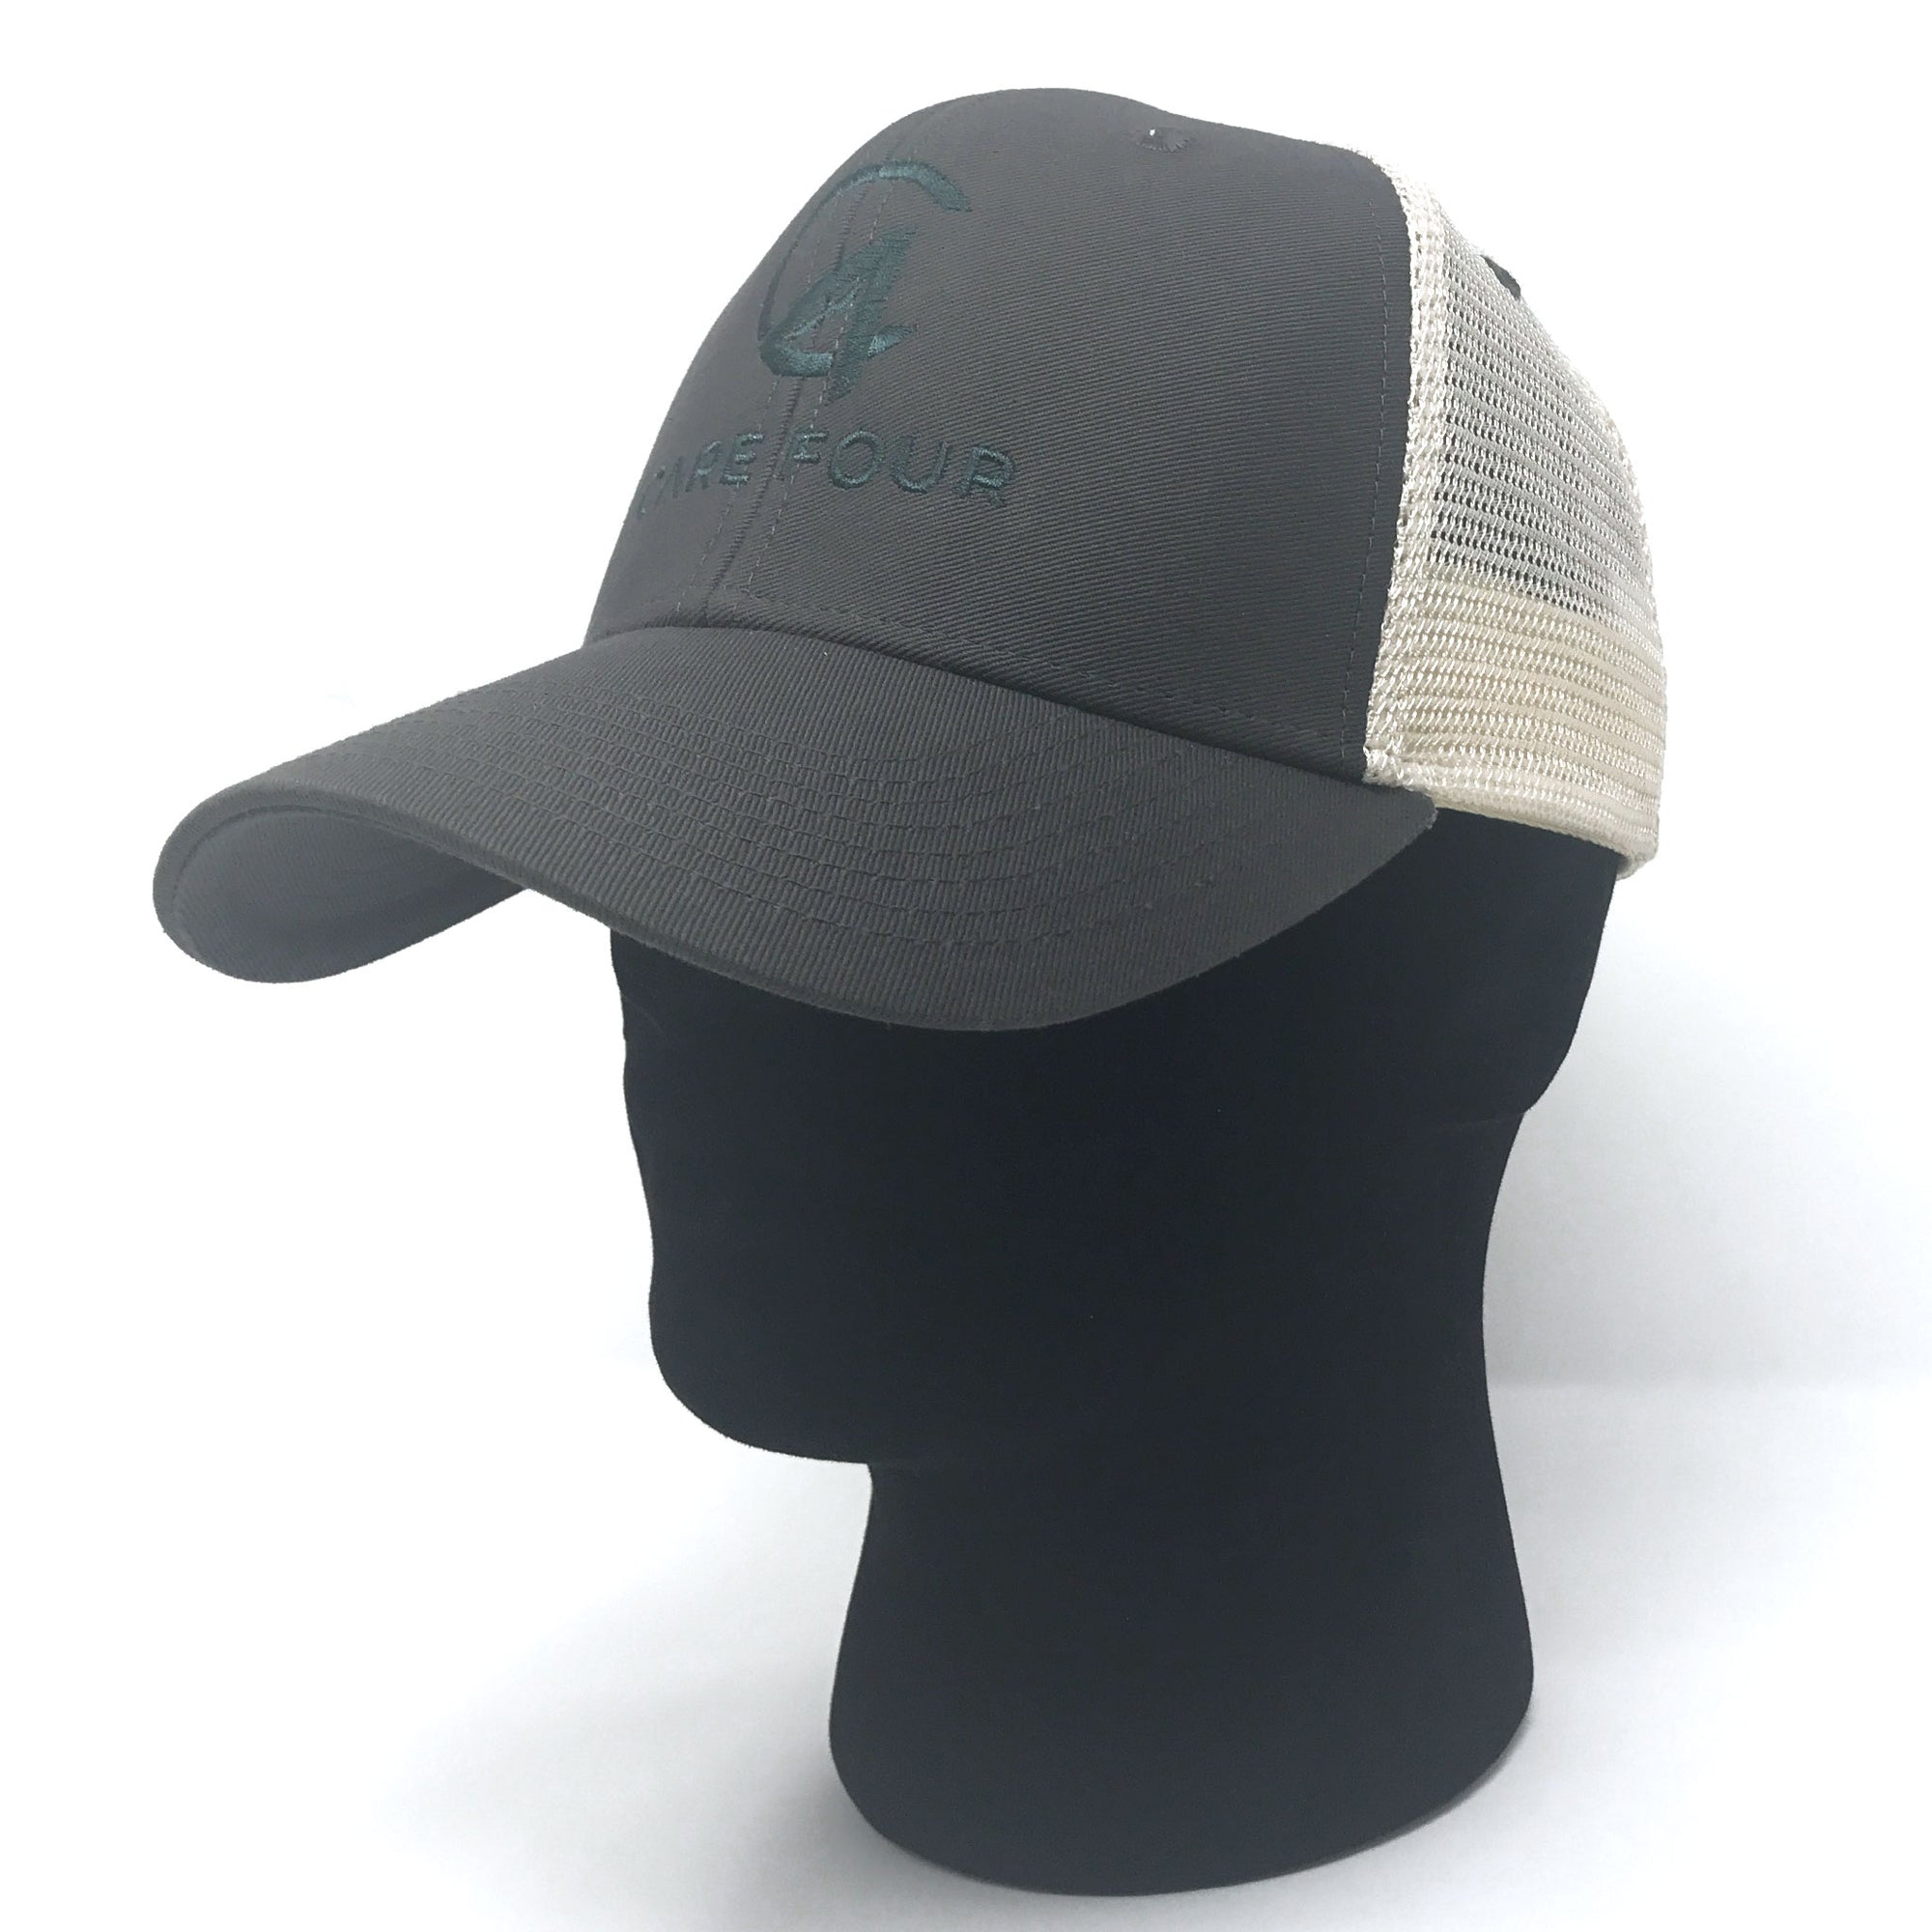 Grey C4 Classic Trucker Hat - Care Four